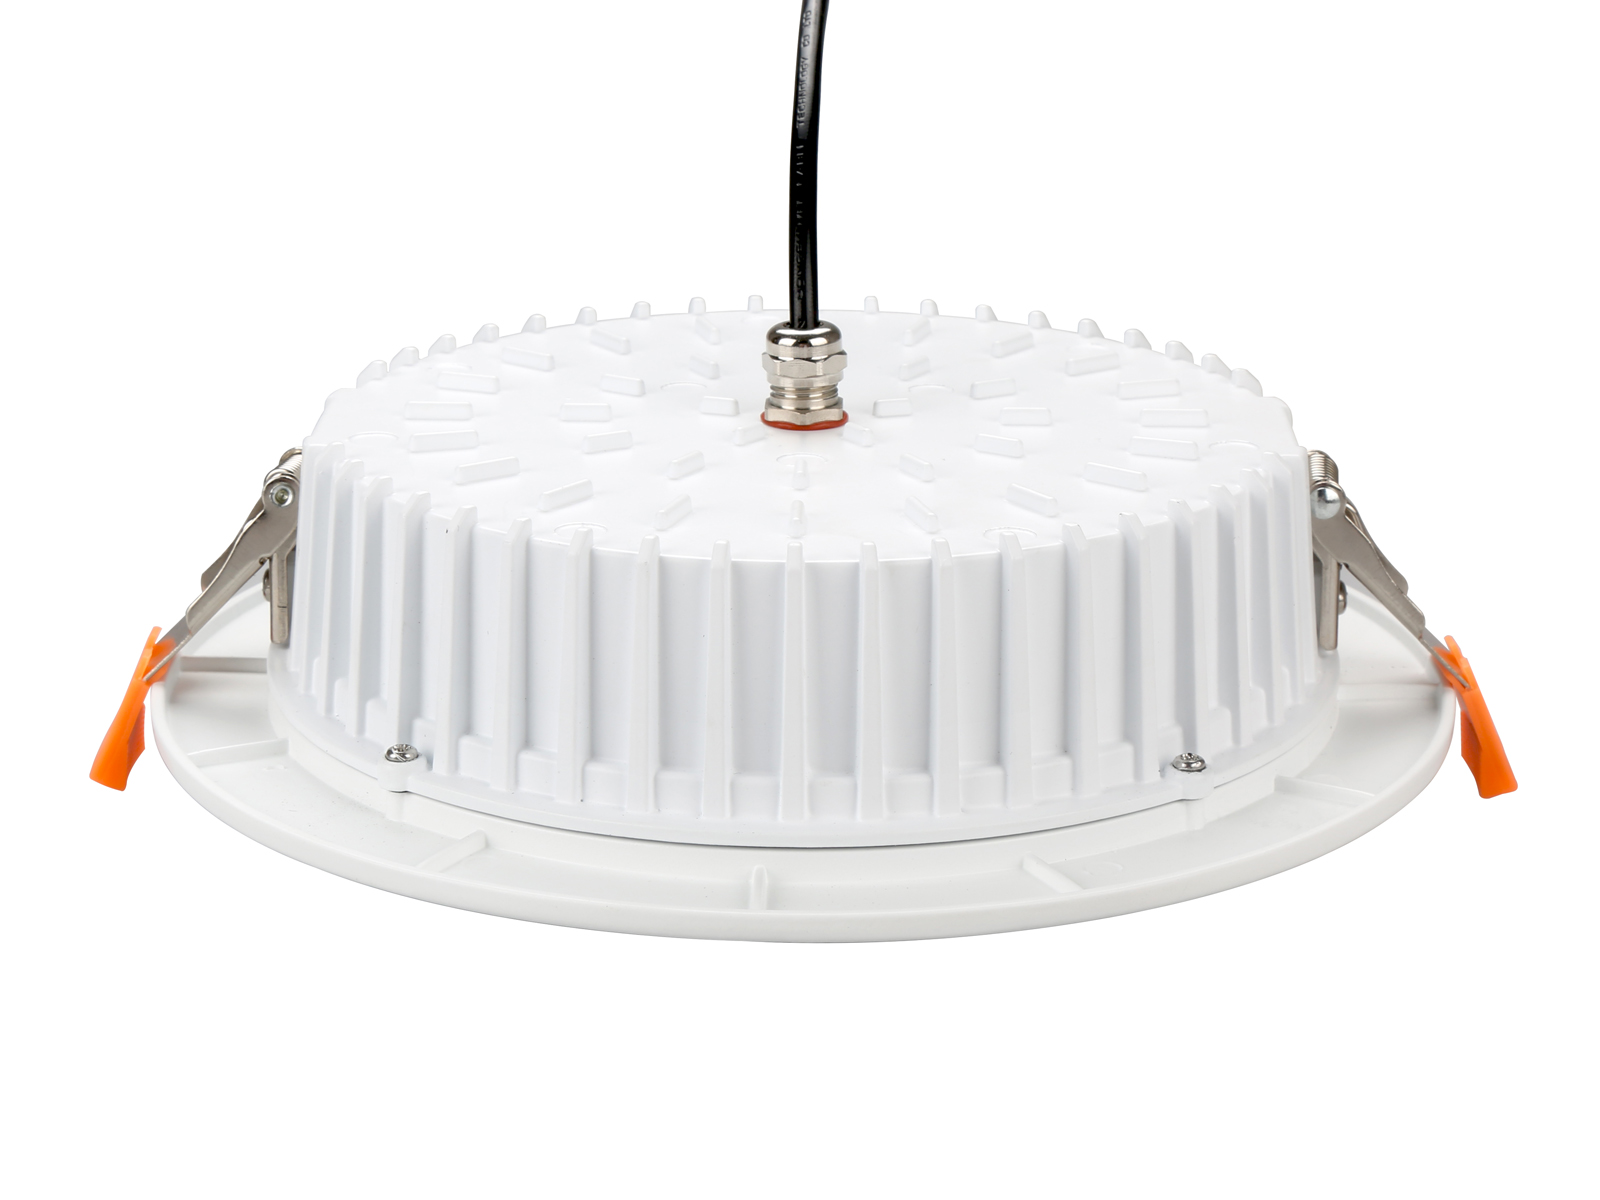 DL110 2 Commercial 100lmw LED Downlighting